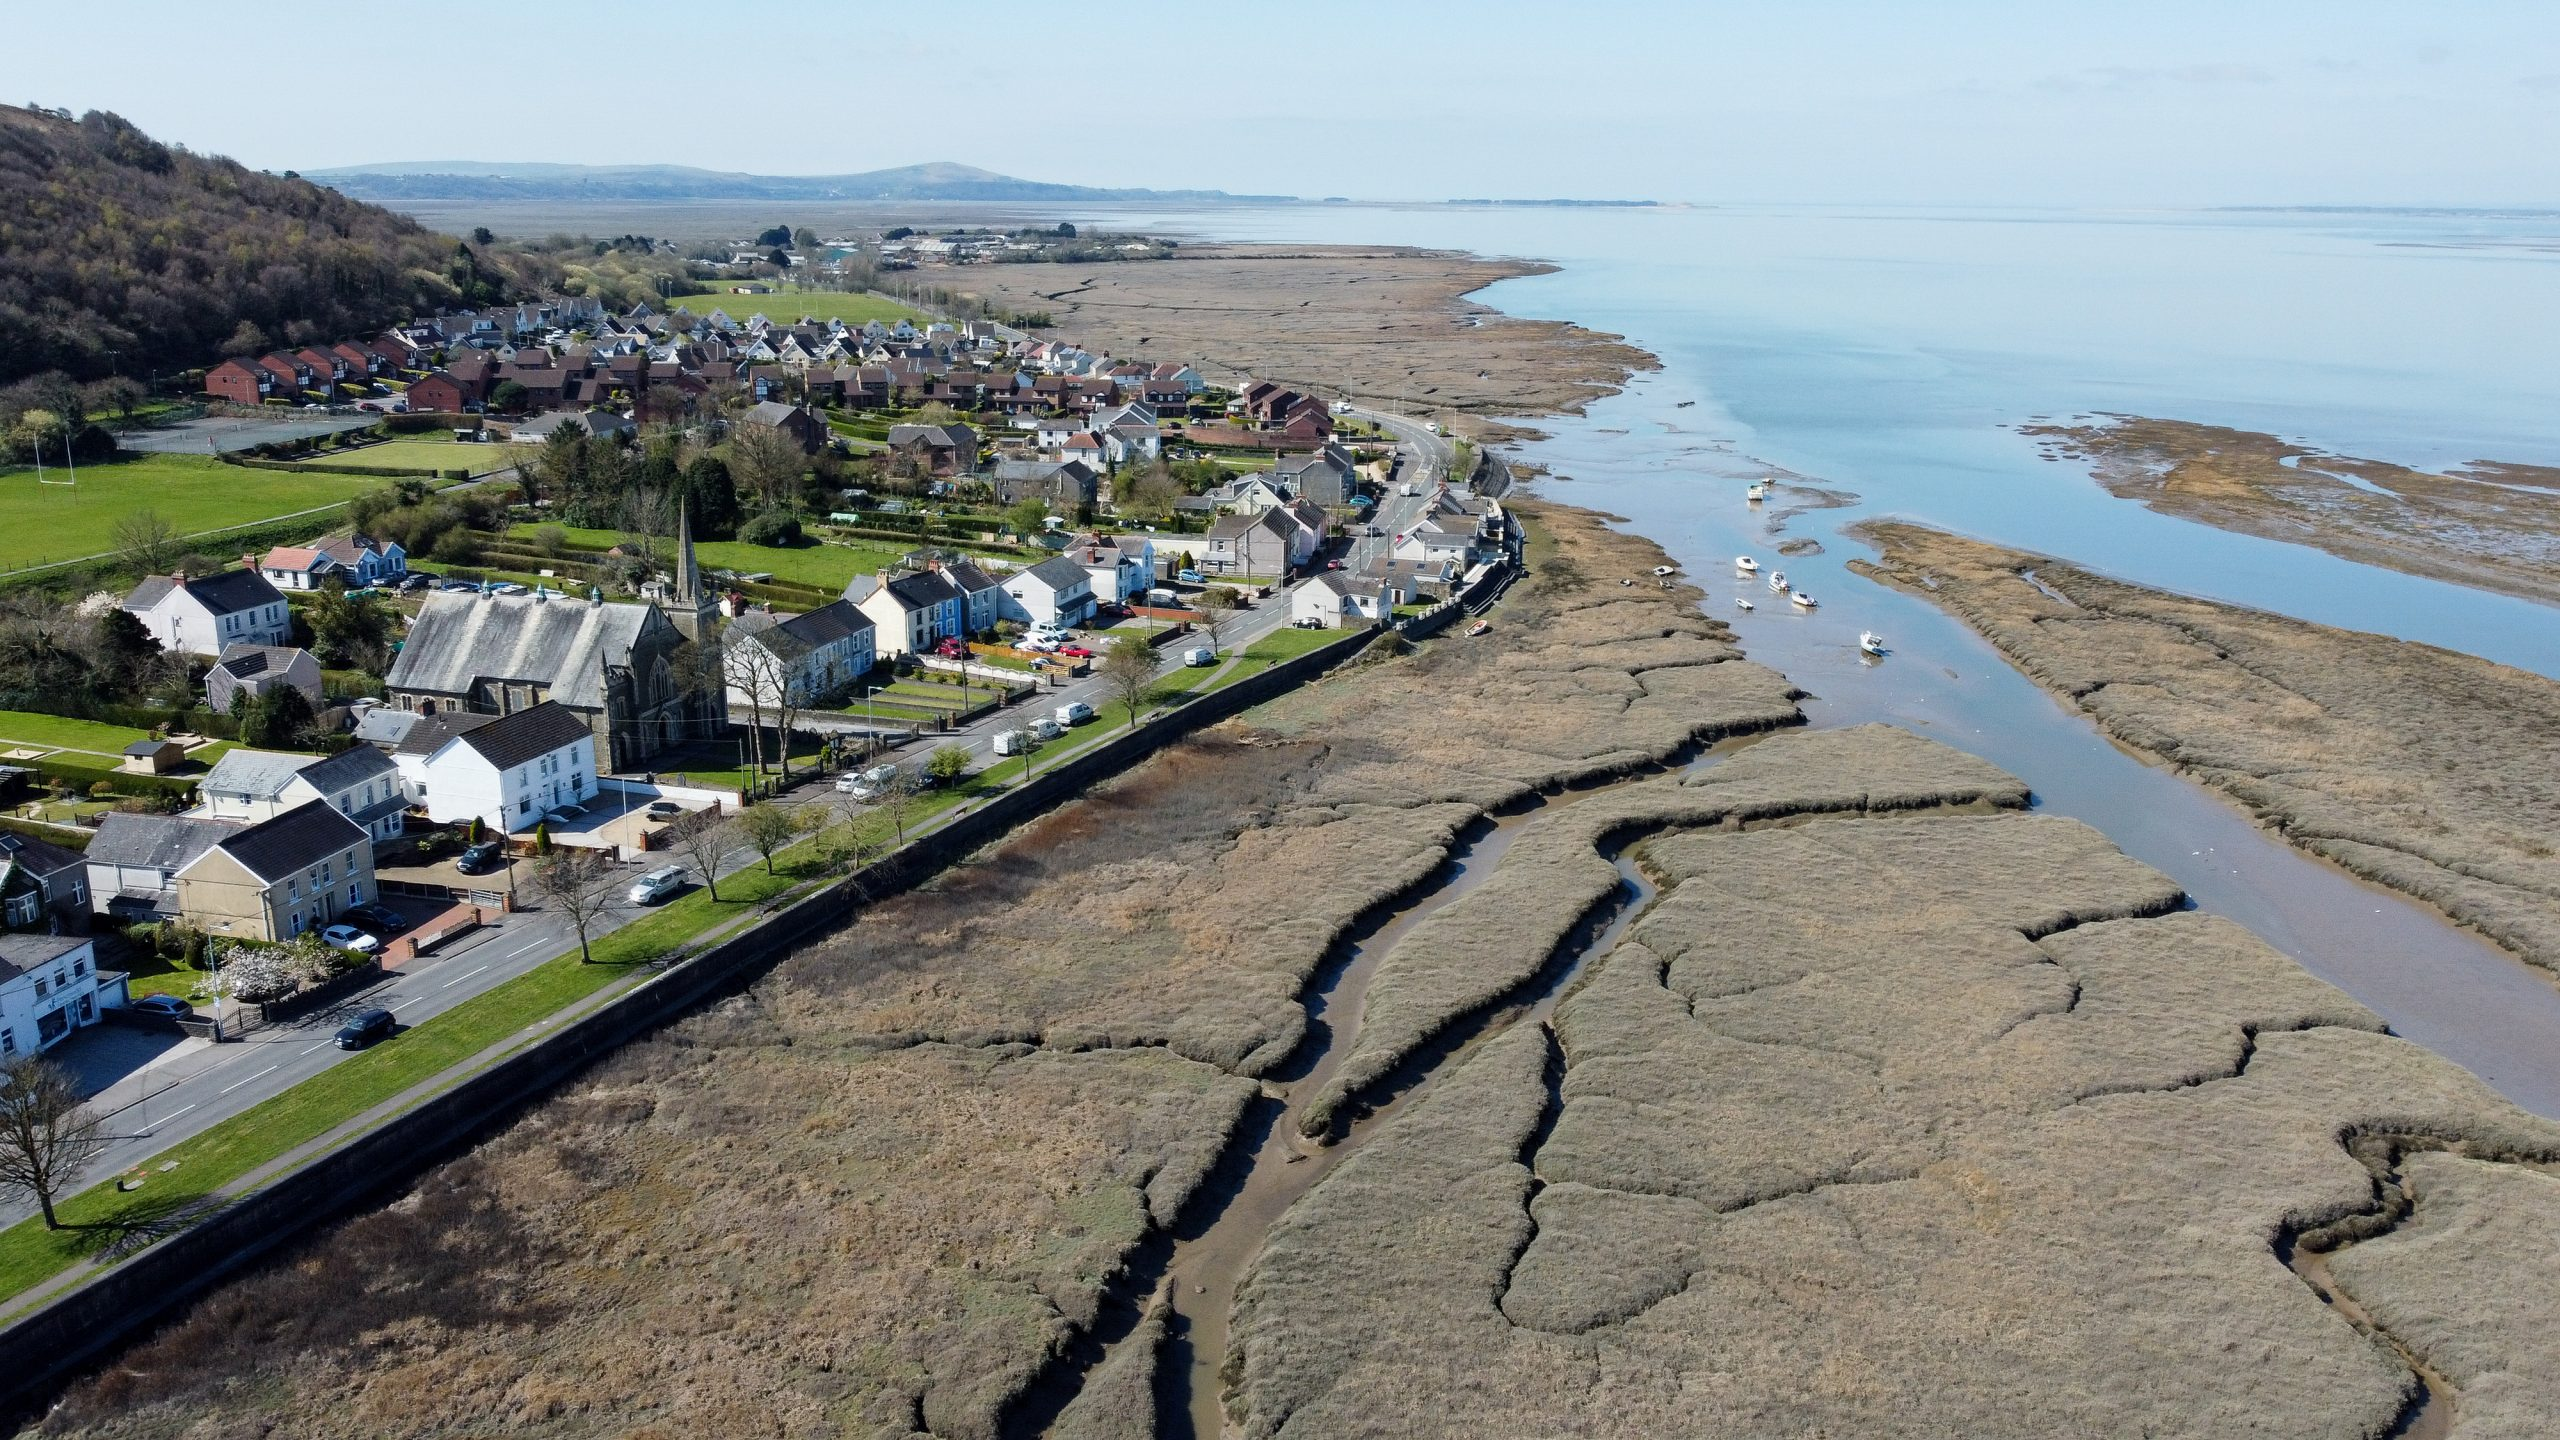 Penclawdd Village and Estuary from Above - by Ben Holbrook DriftwoodJournals.com